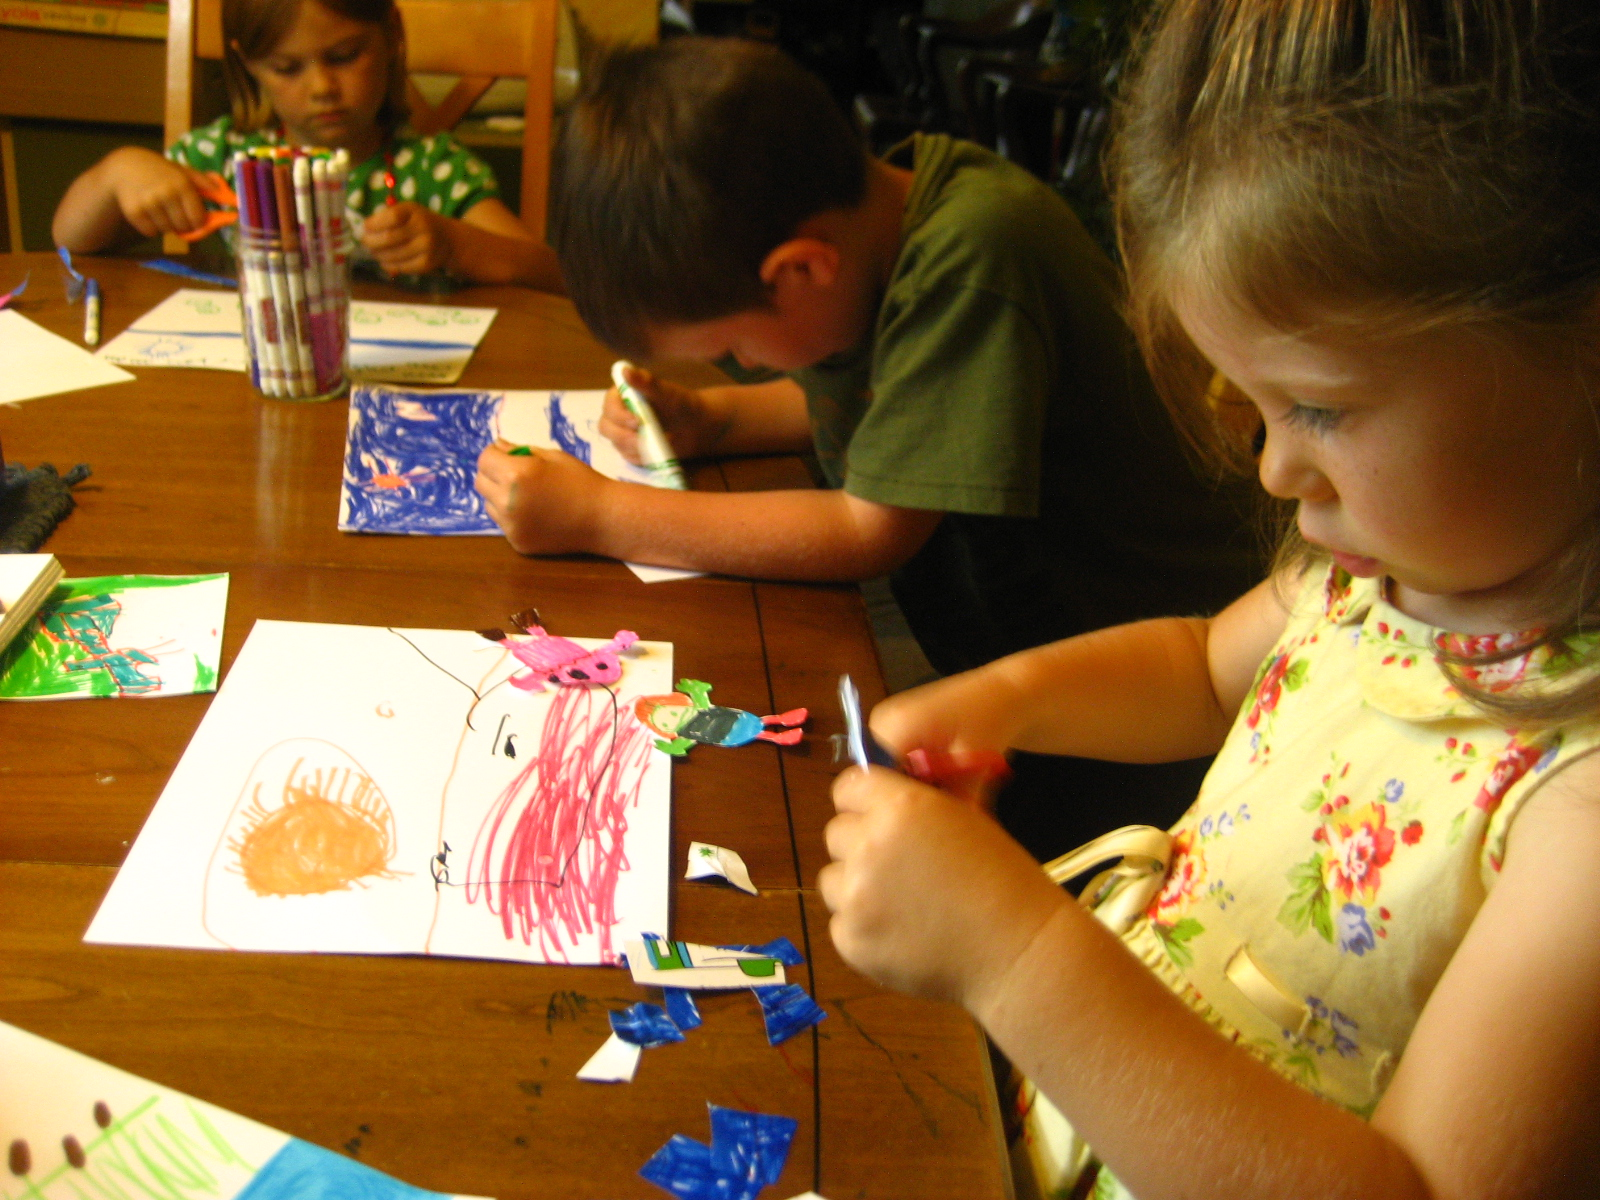 Kira S Crafty Life Blog Art Lesson With Little Kids Collage